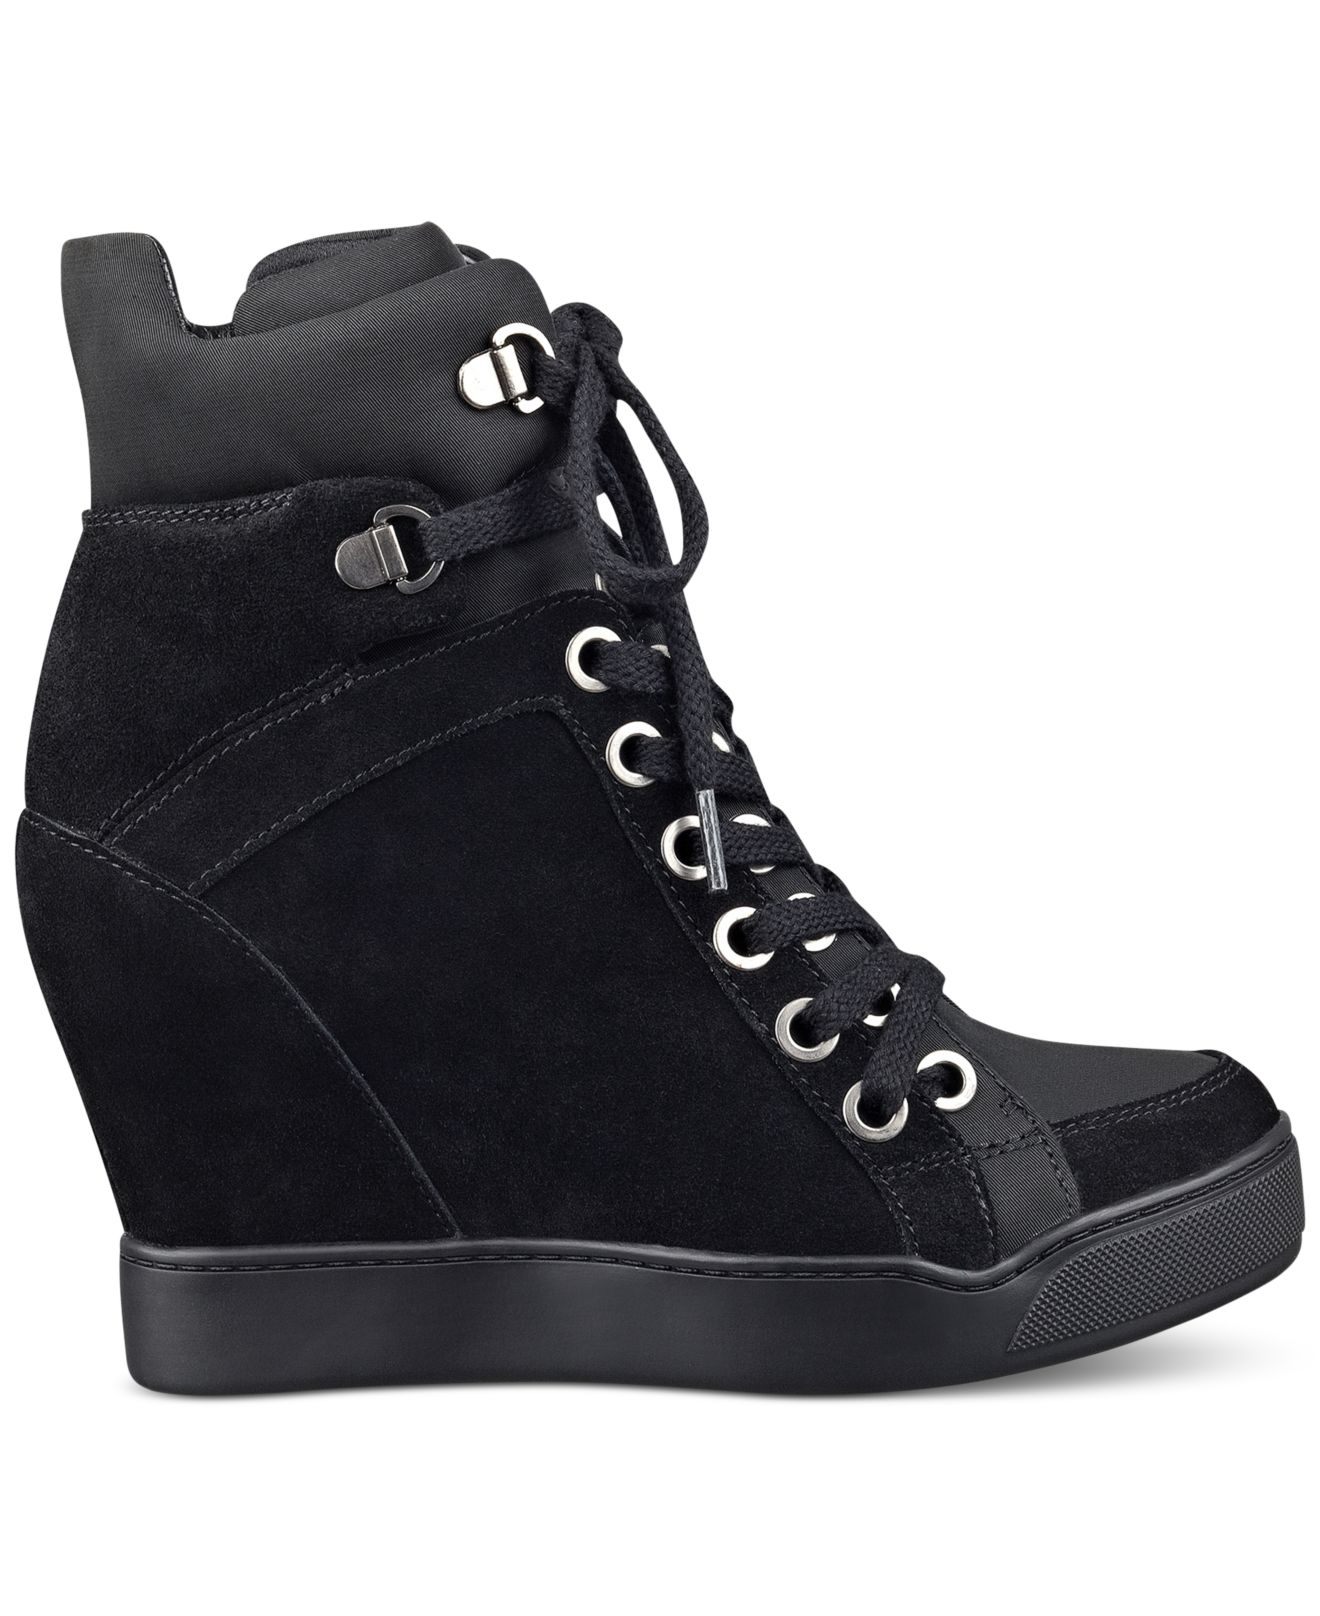 lyst guess womens matty wedge sneakers in black